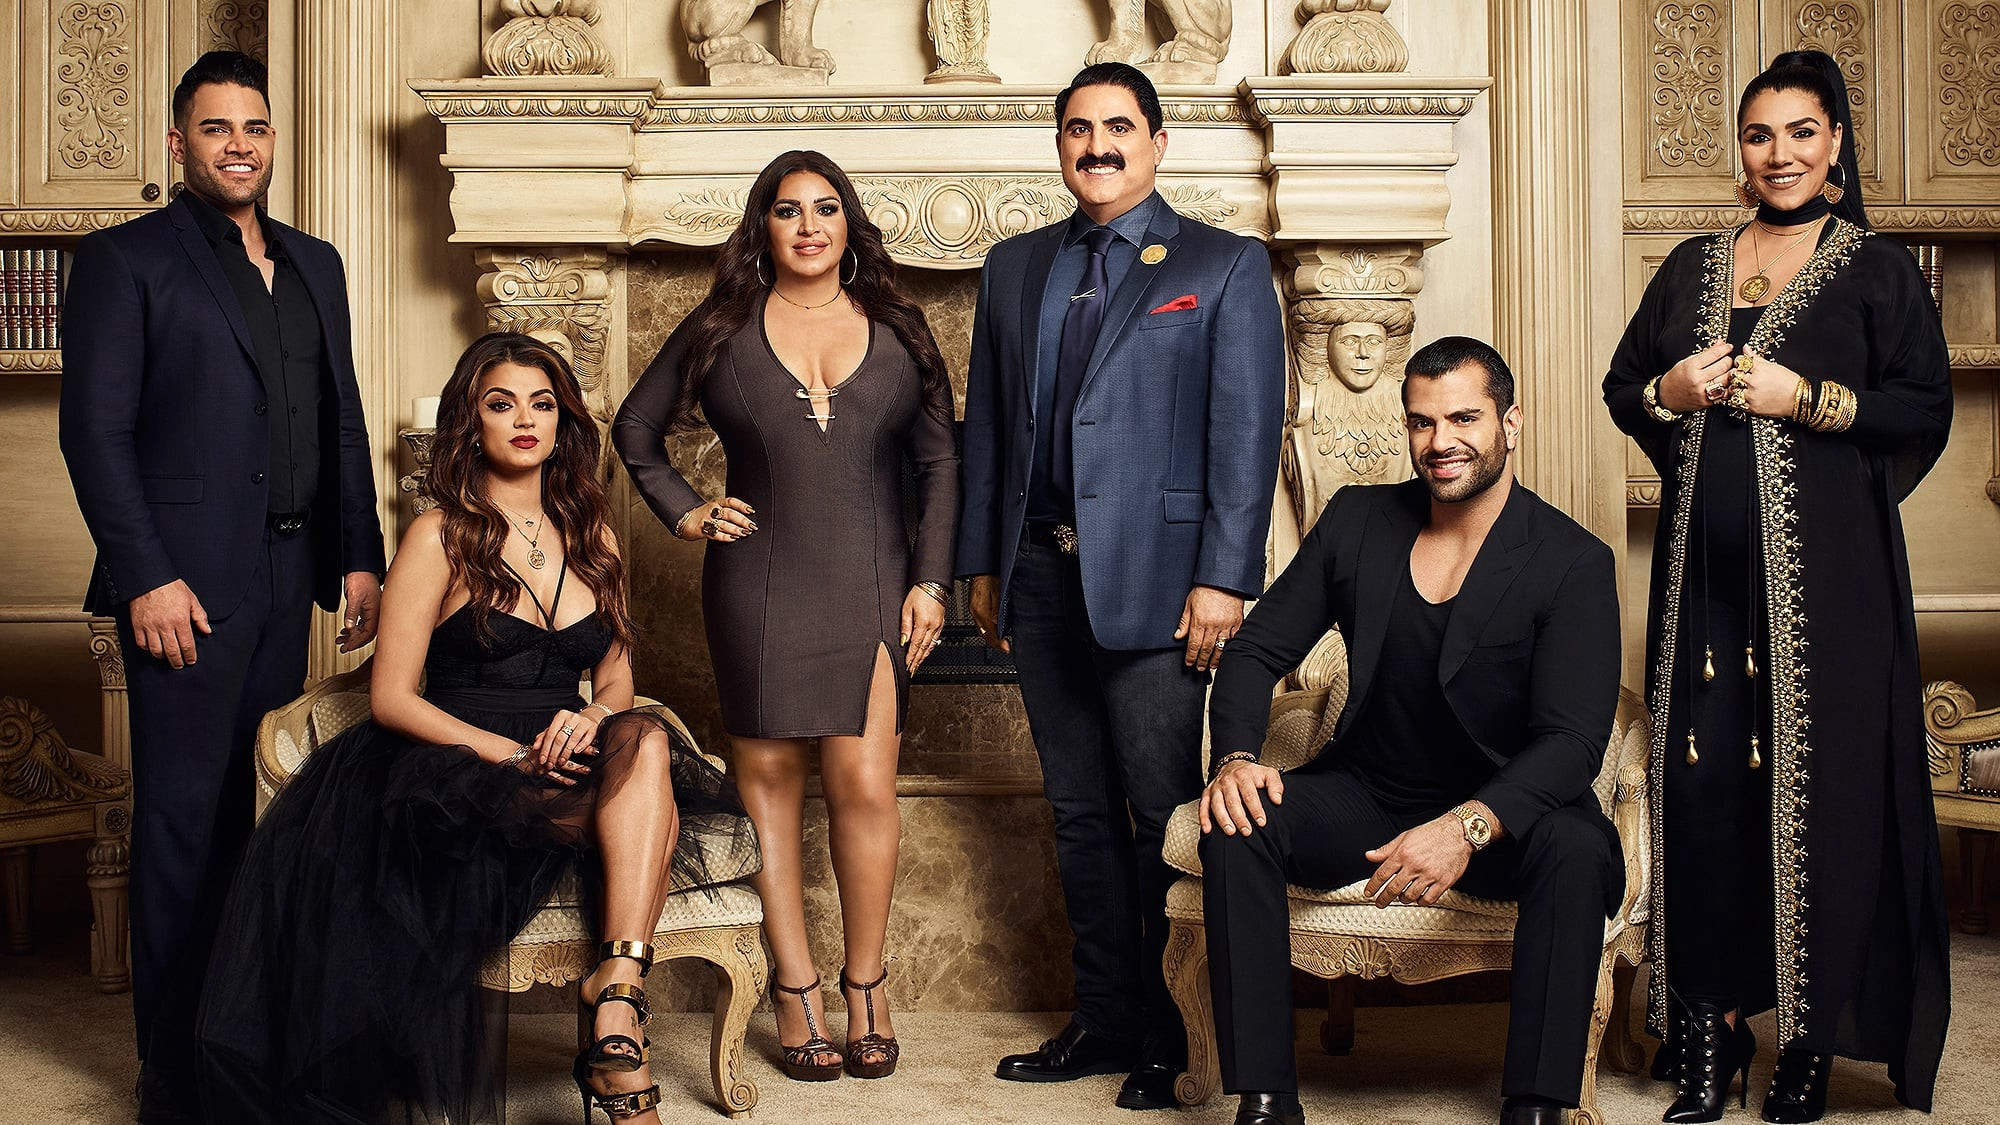 watch free episodes of shahs of sunset